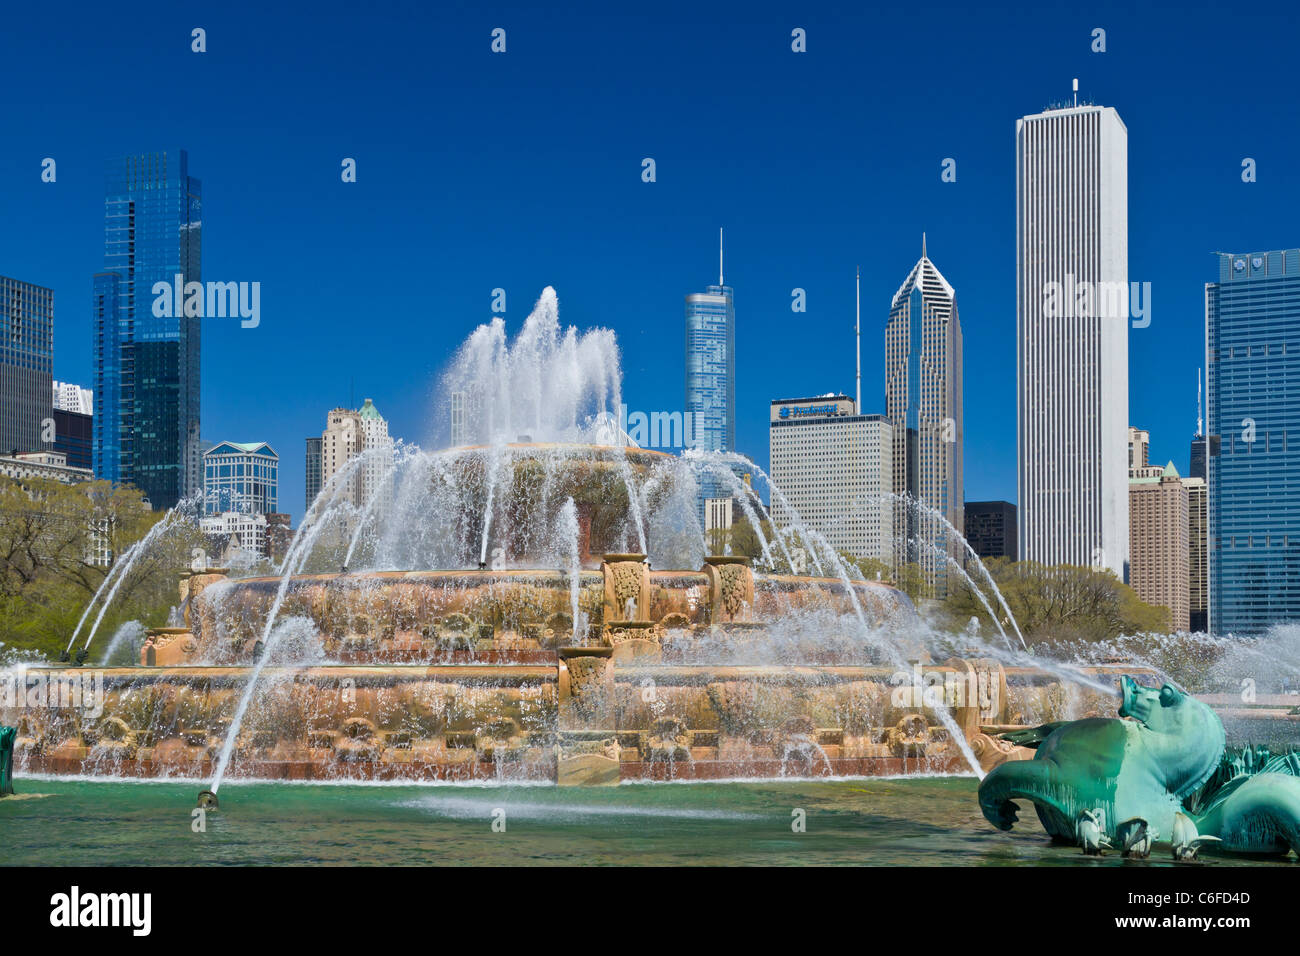 The Clarence Buckingham Memorial Fountain on Lakeshore Dr. in Chicago, Illinois, USA. - Stock Image